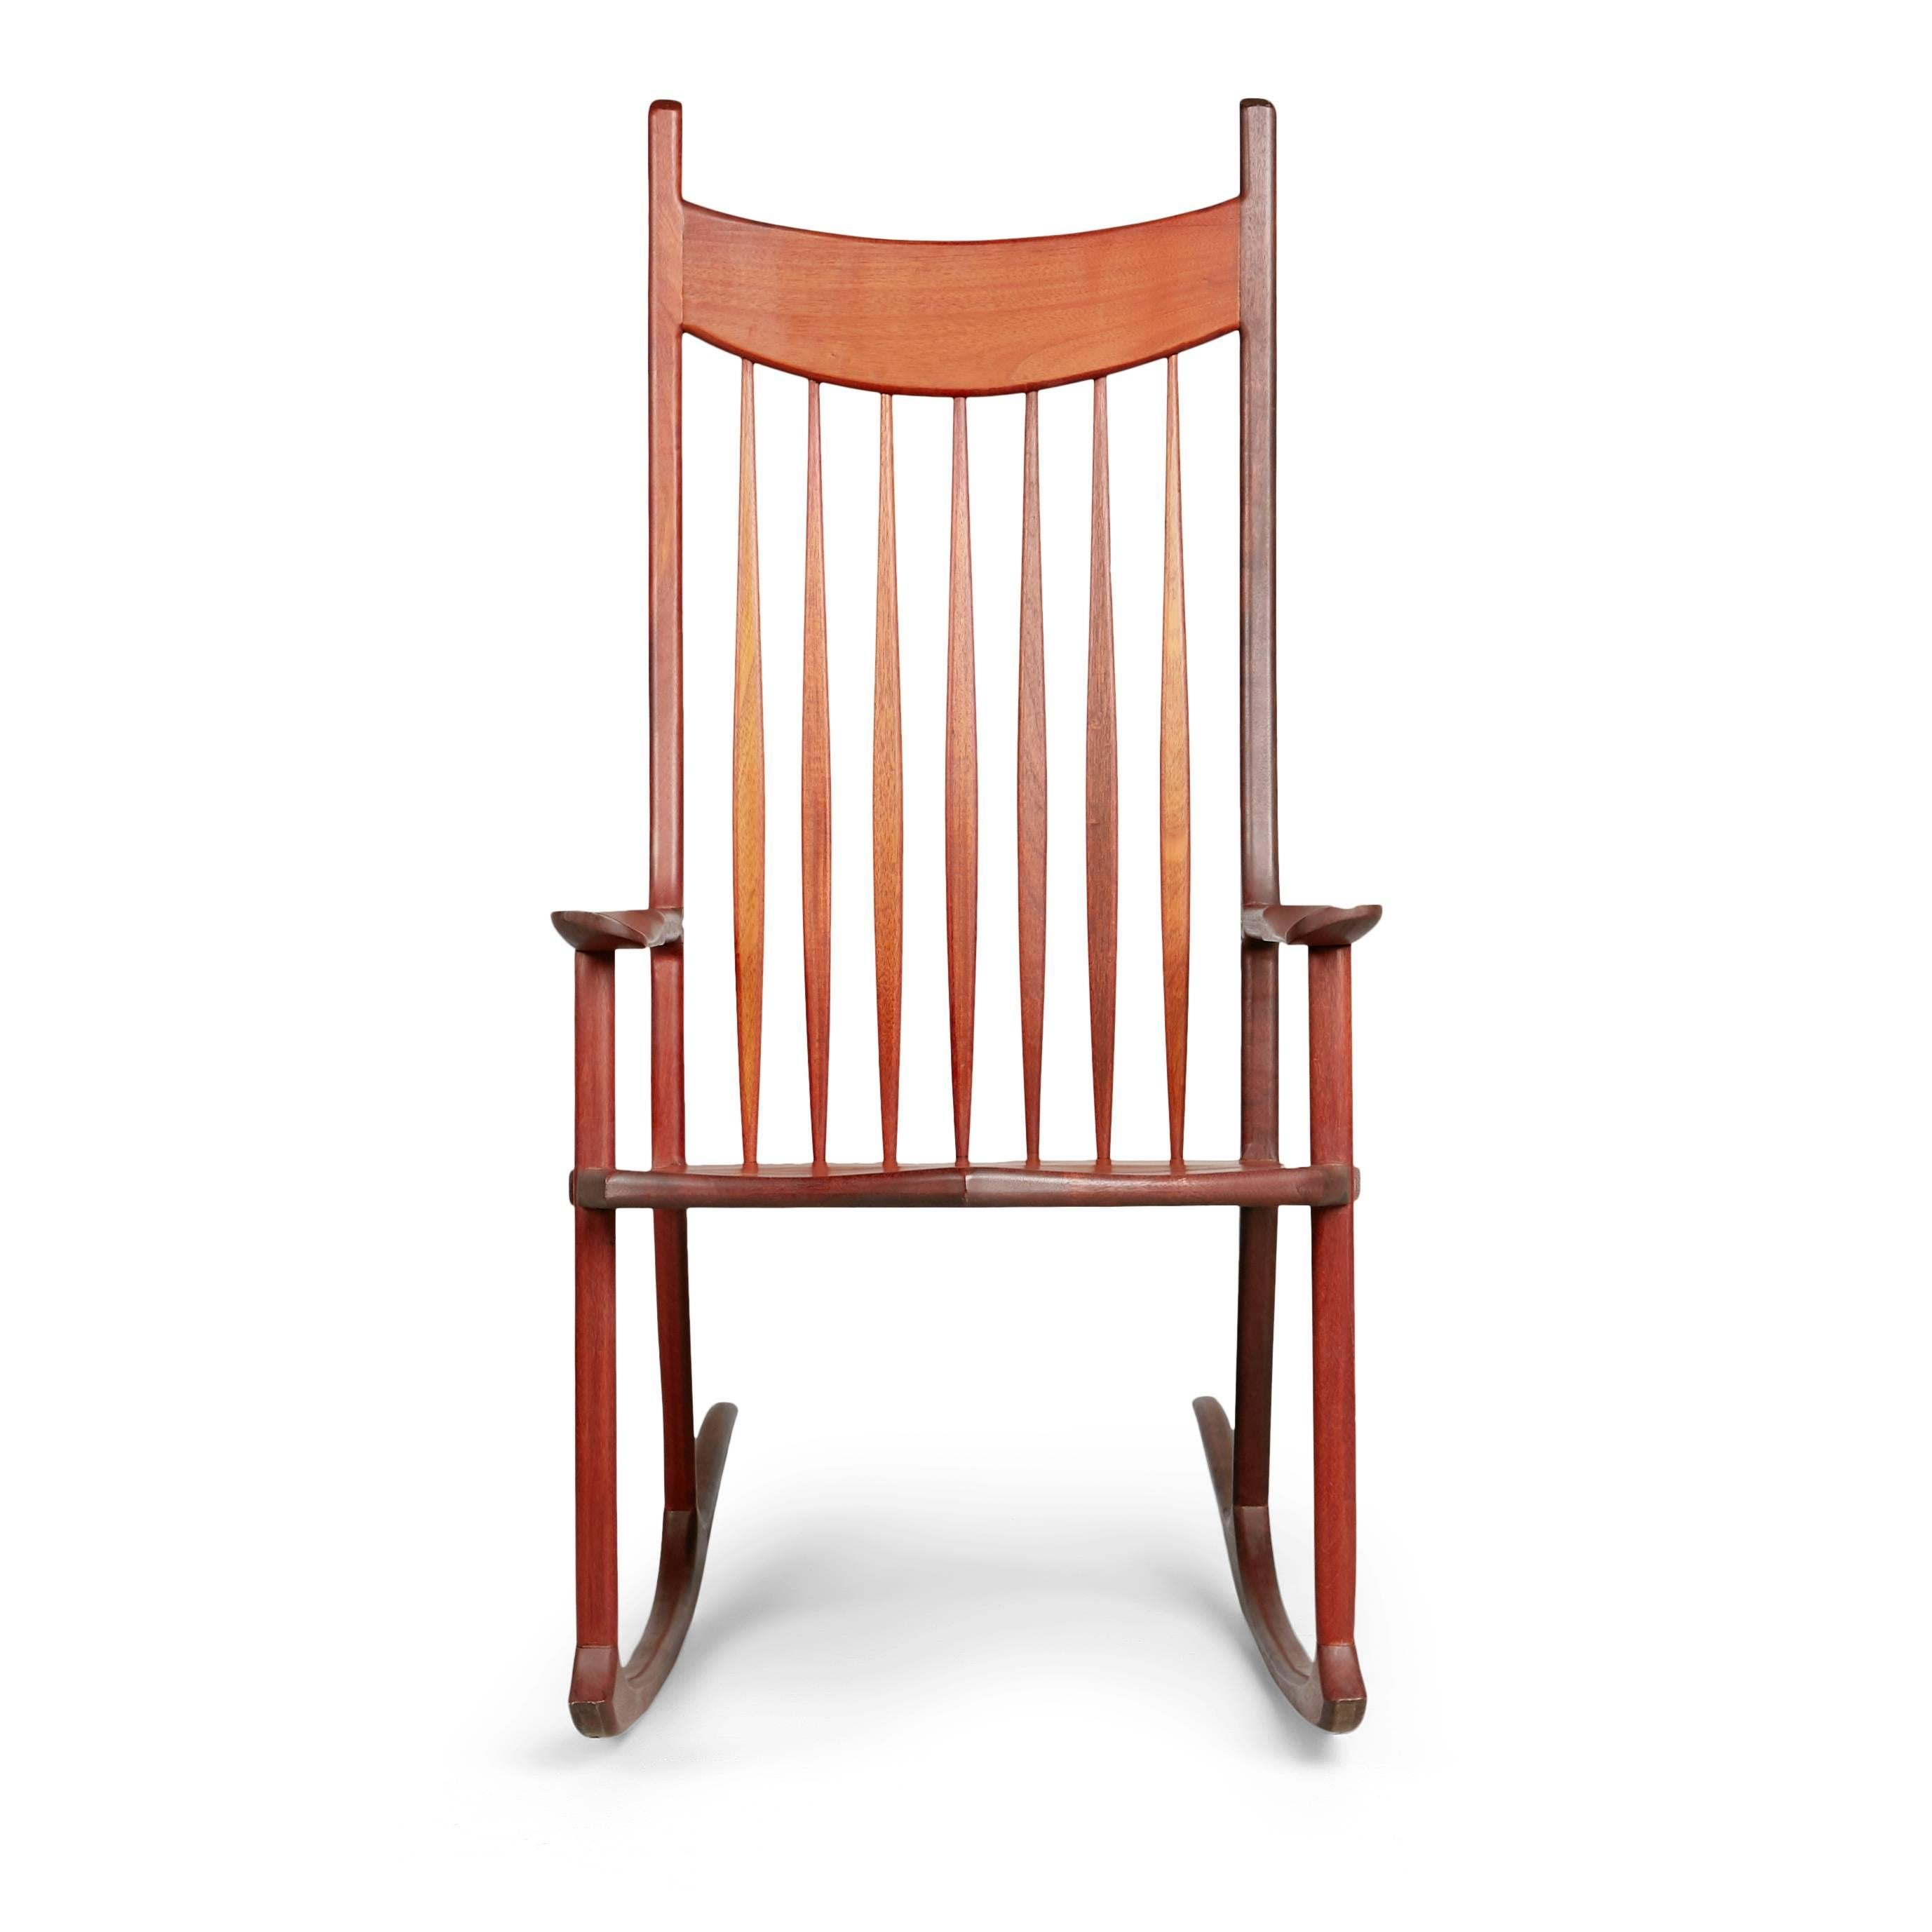 Oversized Sam Maloof Styled American Craftsman Rocking Chair. This  Generously Proportioned Armchair Consists Of A